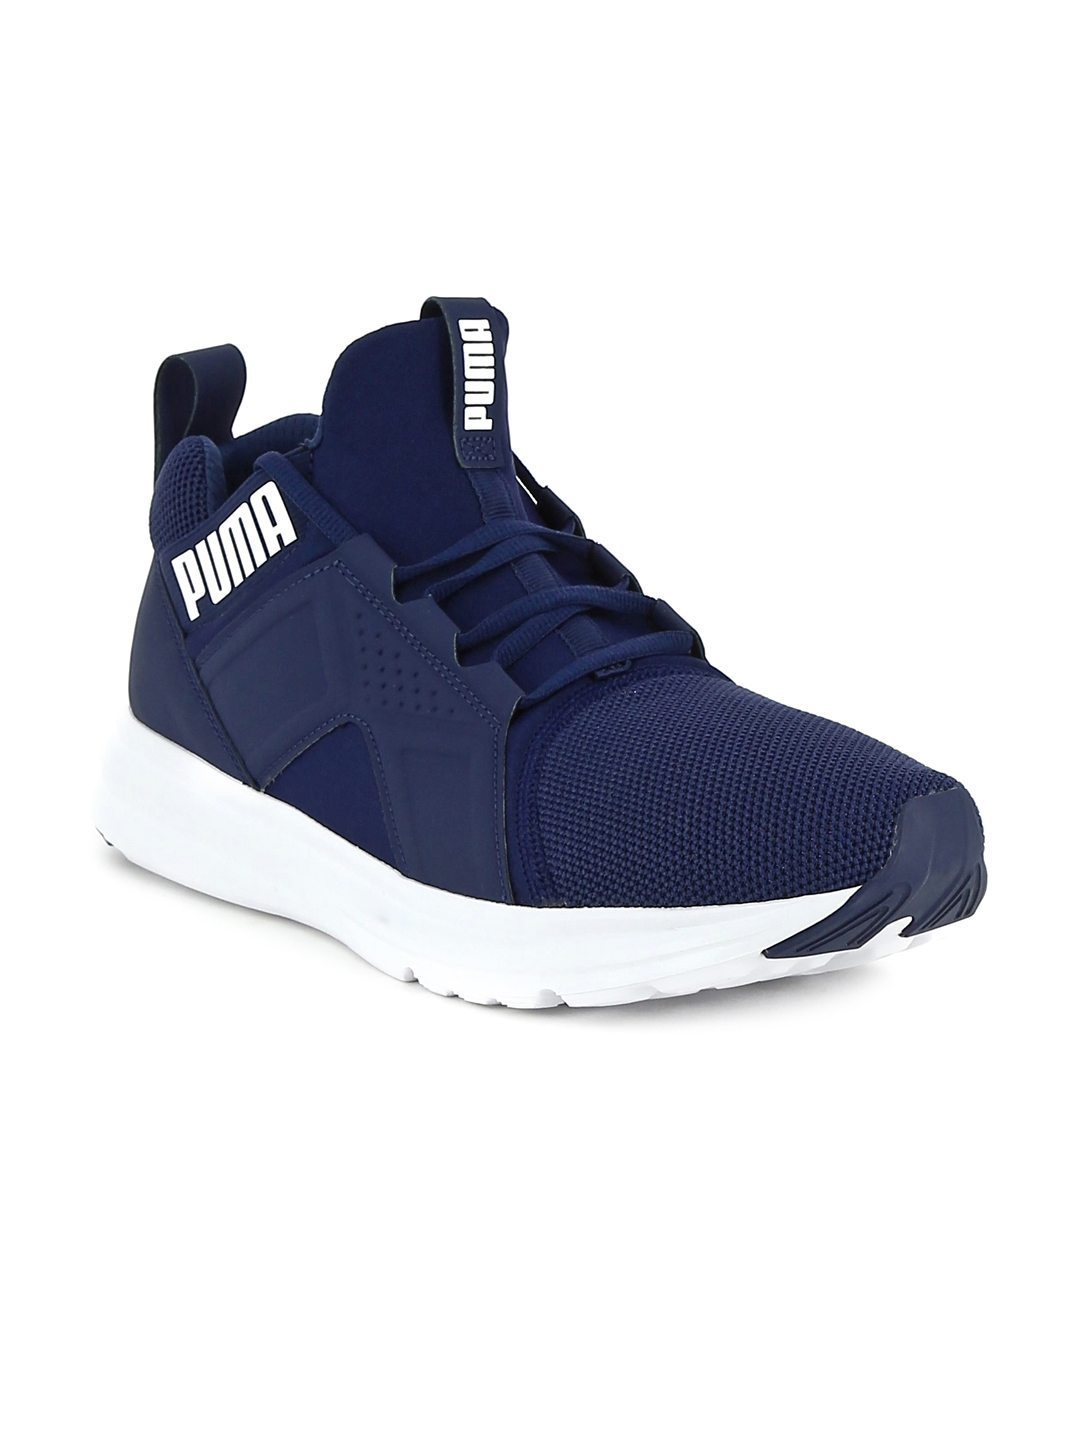 79a16fedb2b Buy Puma Men Navy Enzo Mesh Running Shoes - Sports Shoes for Men ...